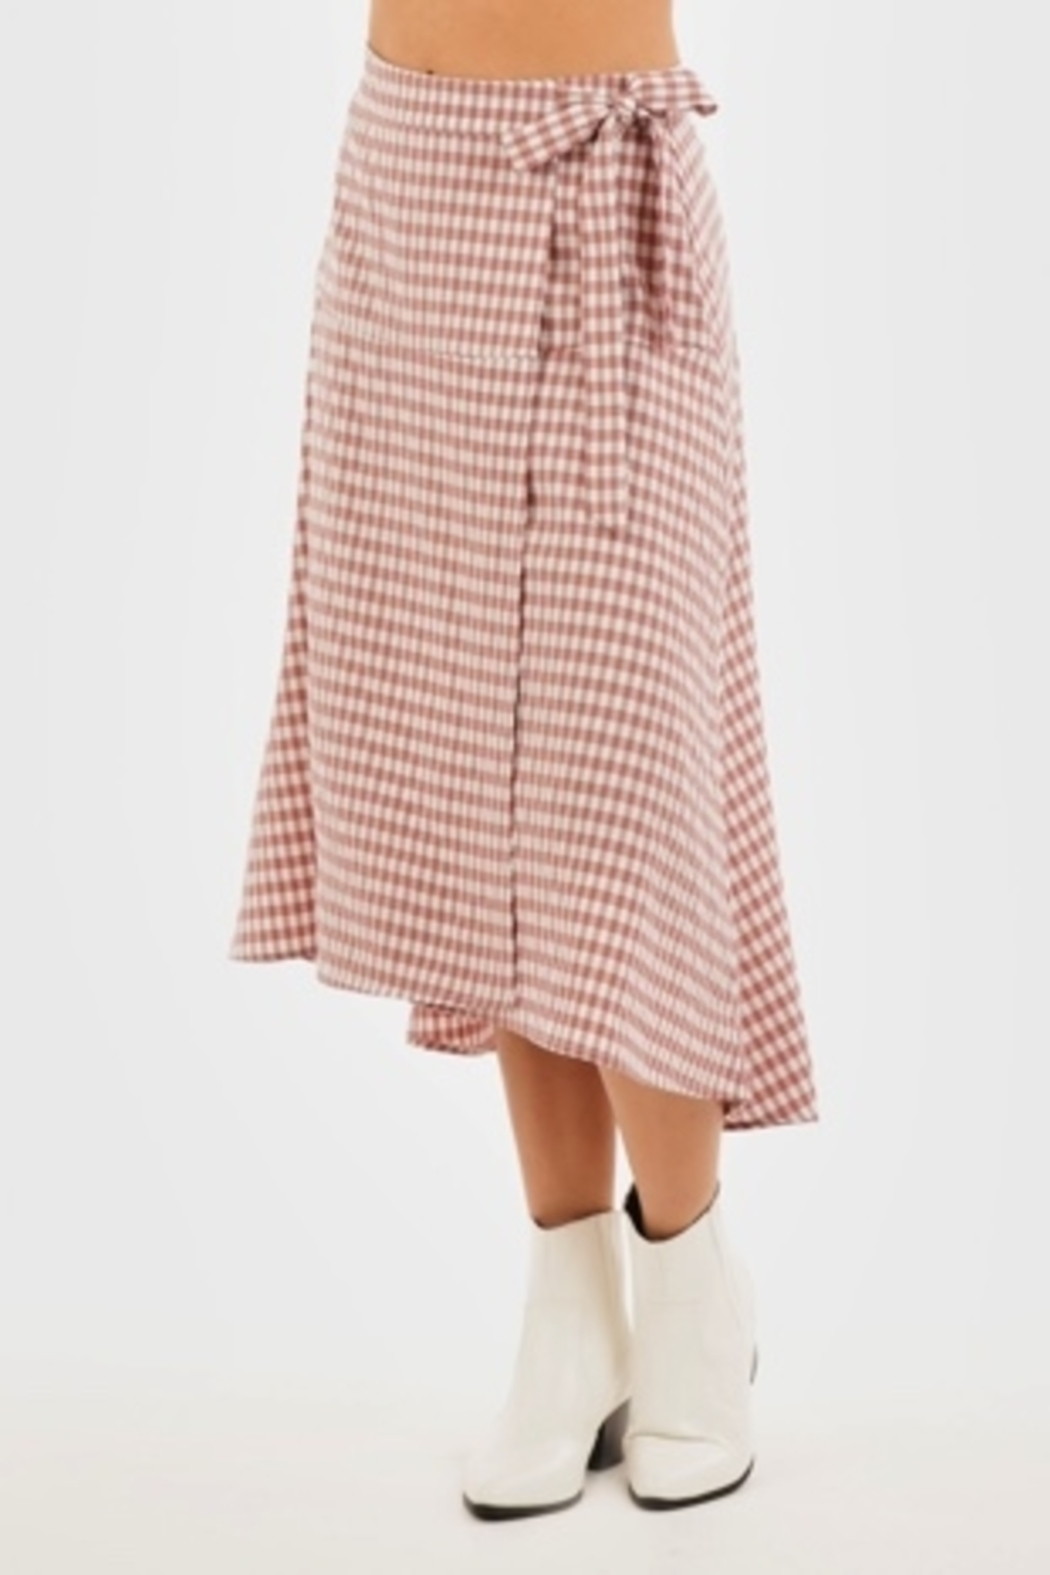 Very J Gingham Midi Wrap Skirt - Side Cropped Image